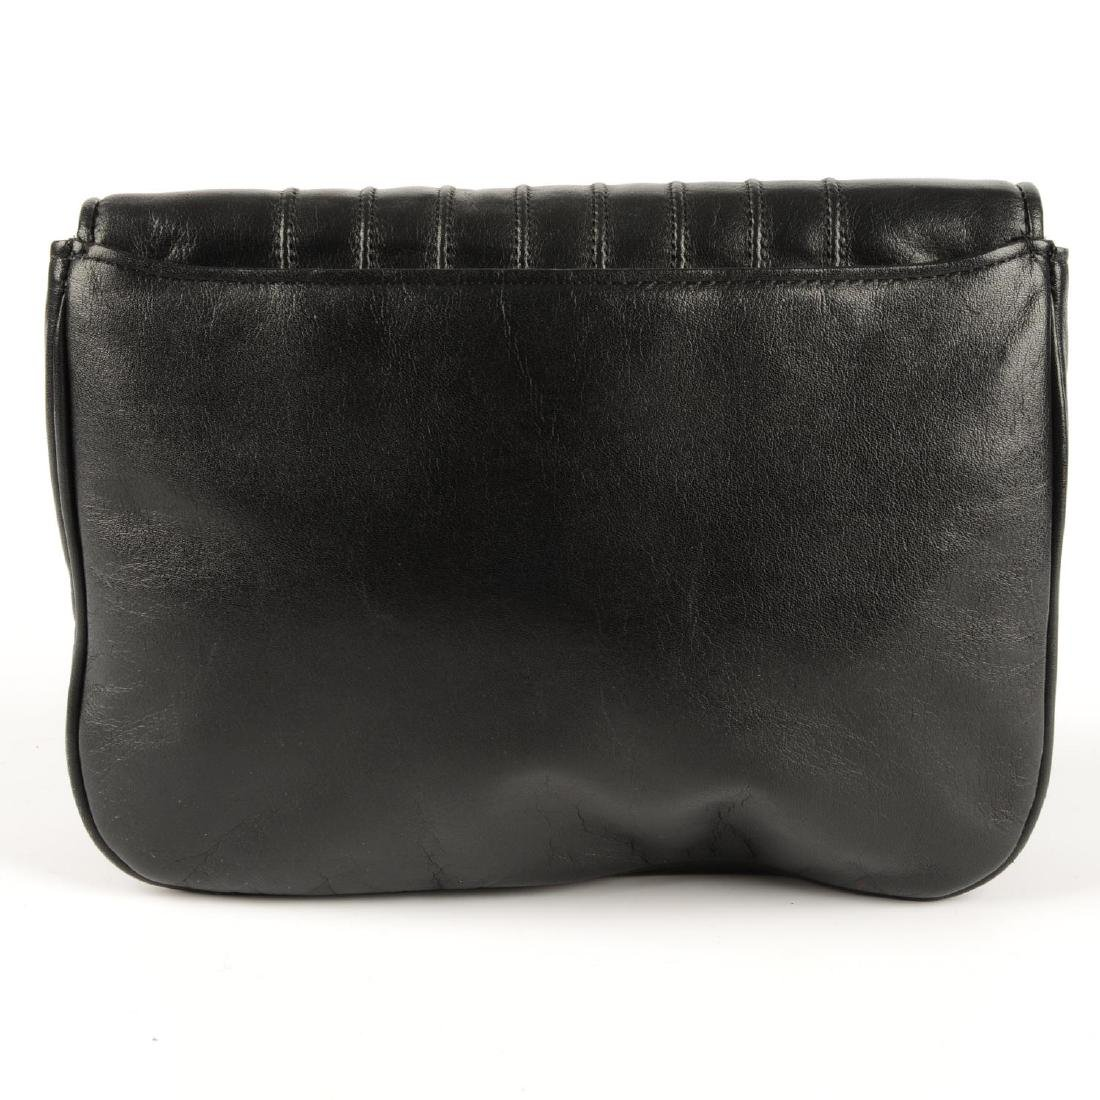 VALENTINO - a vintage leather crossbody handbag. - 2